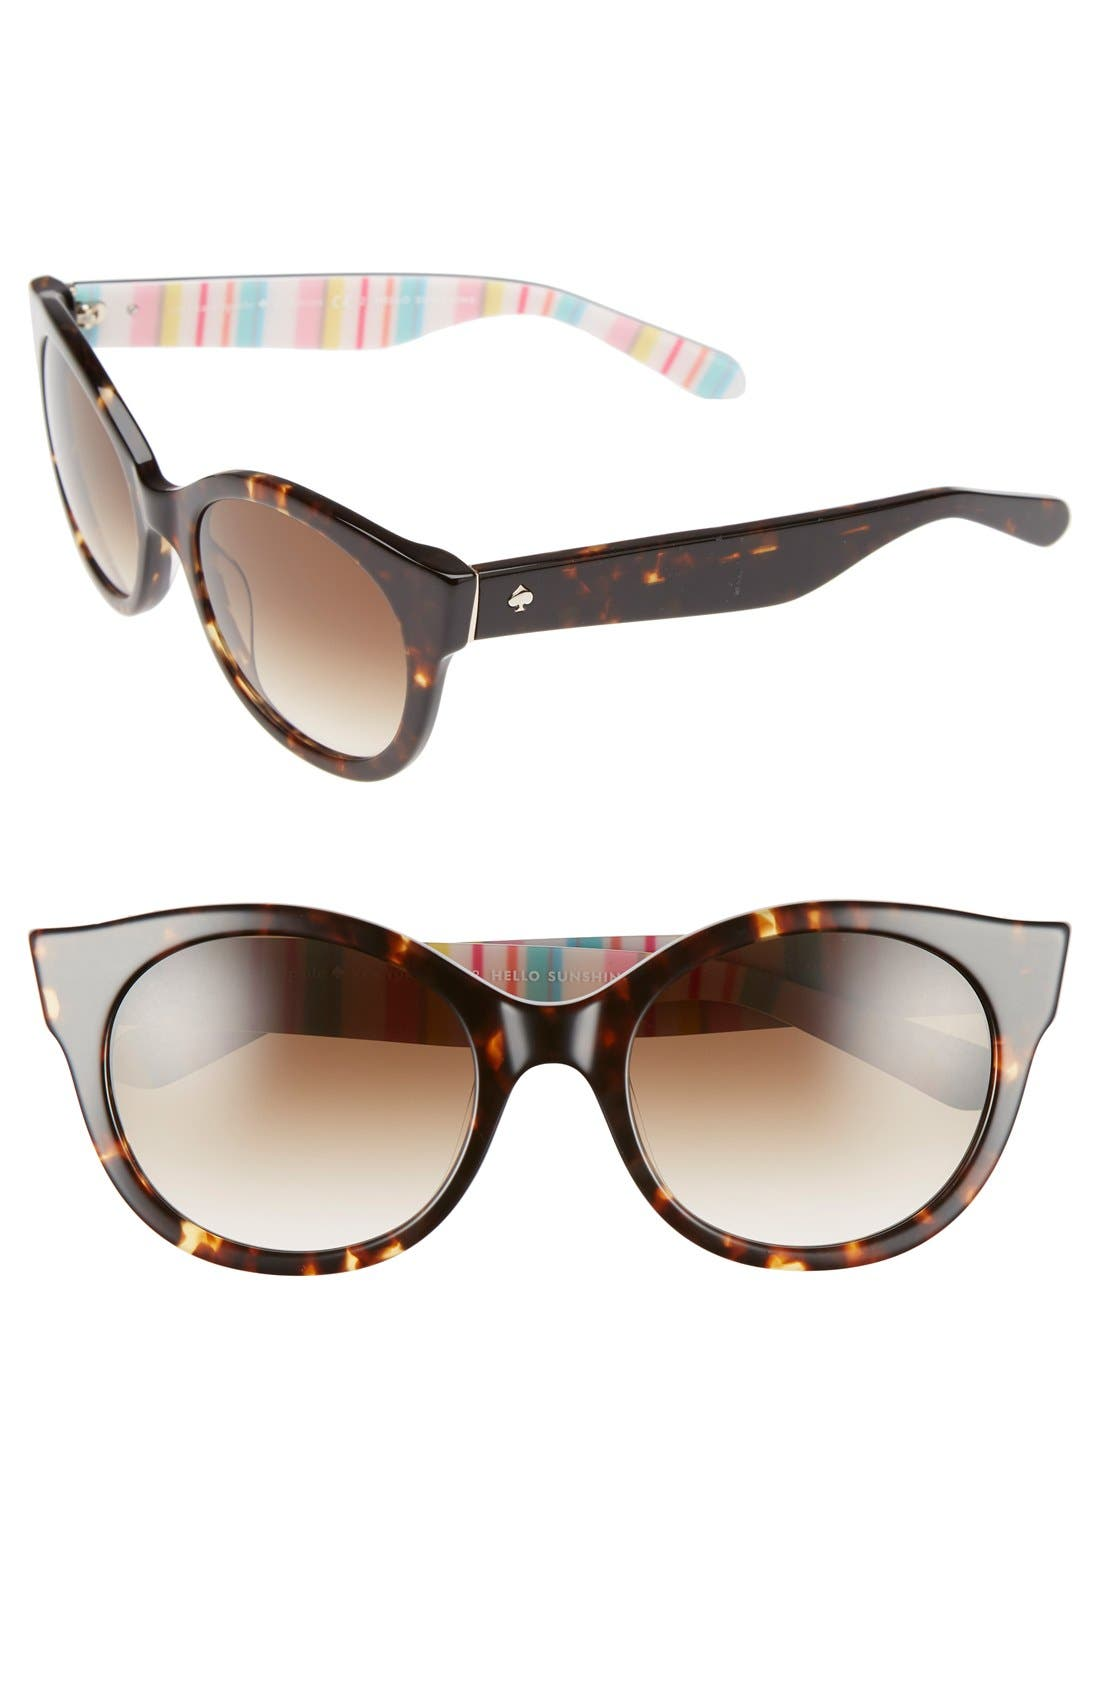 KATE SPADE NEW YORK melly 53mm sunglasses